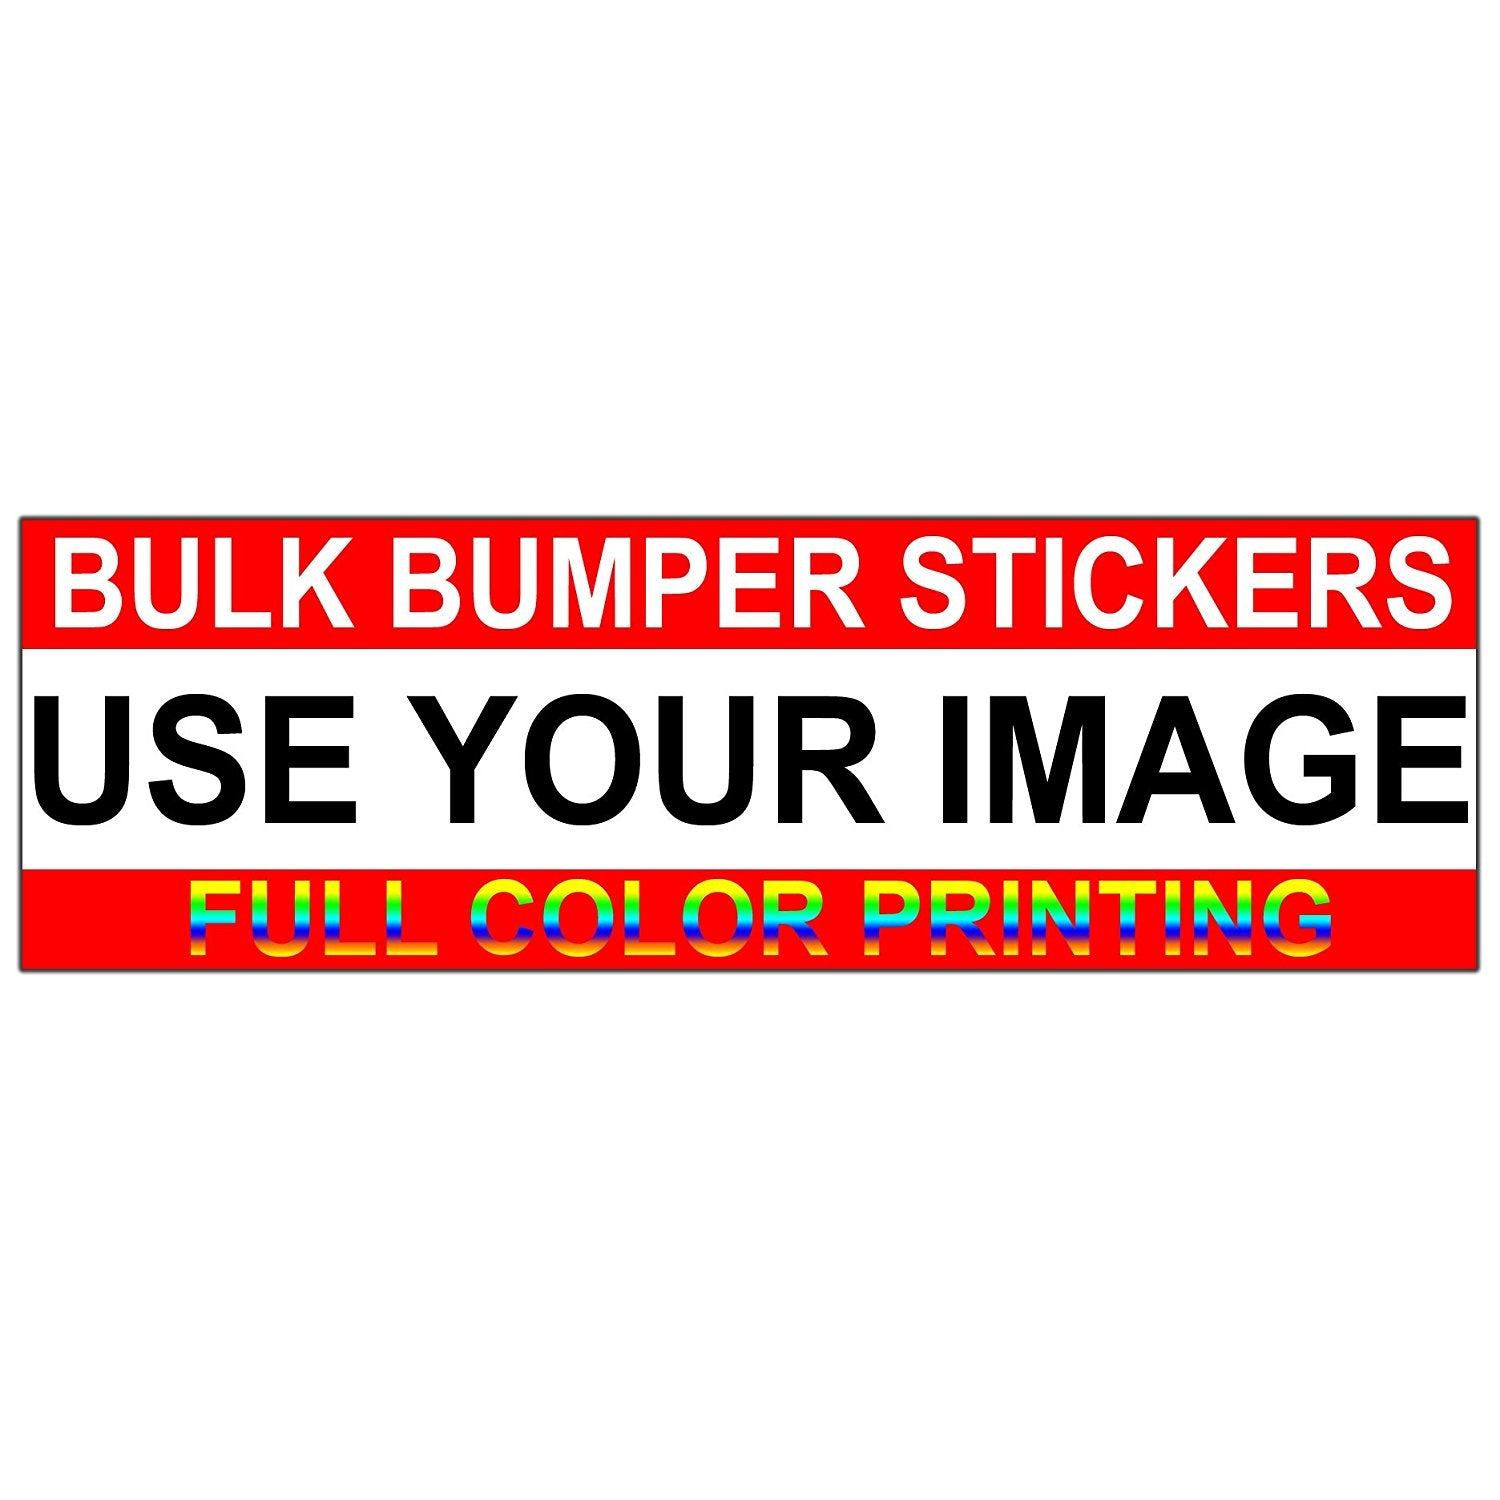 Vwaq custom bumper stickers bulk order bumper sticker pack upload your image